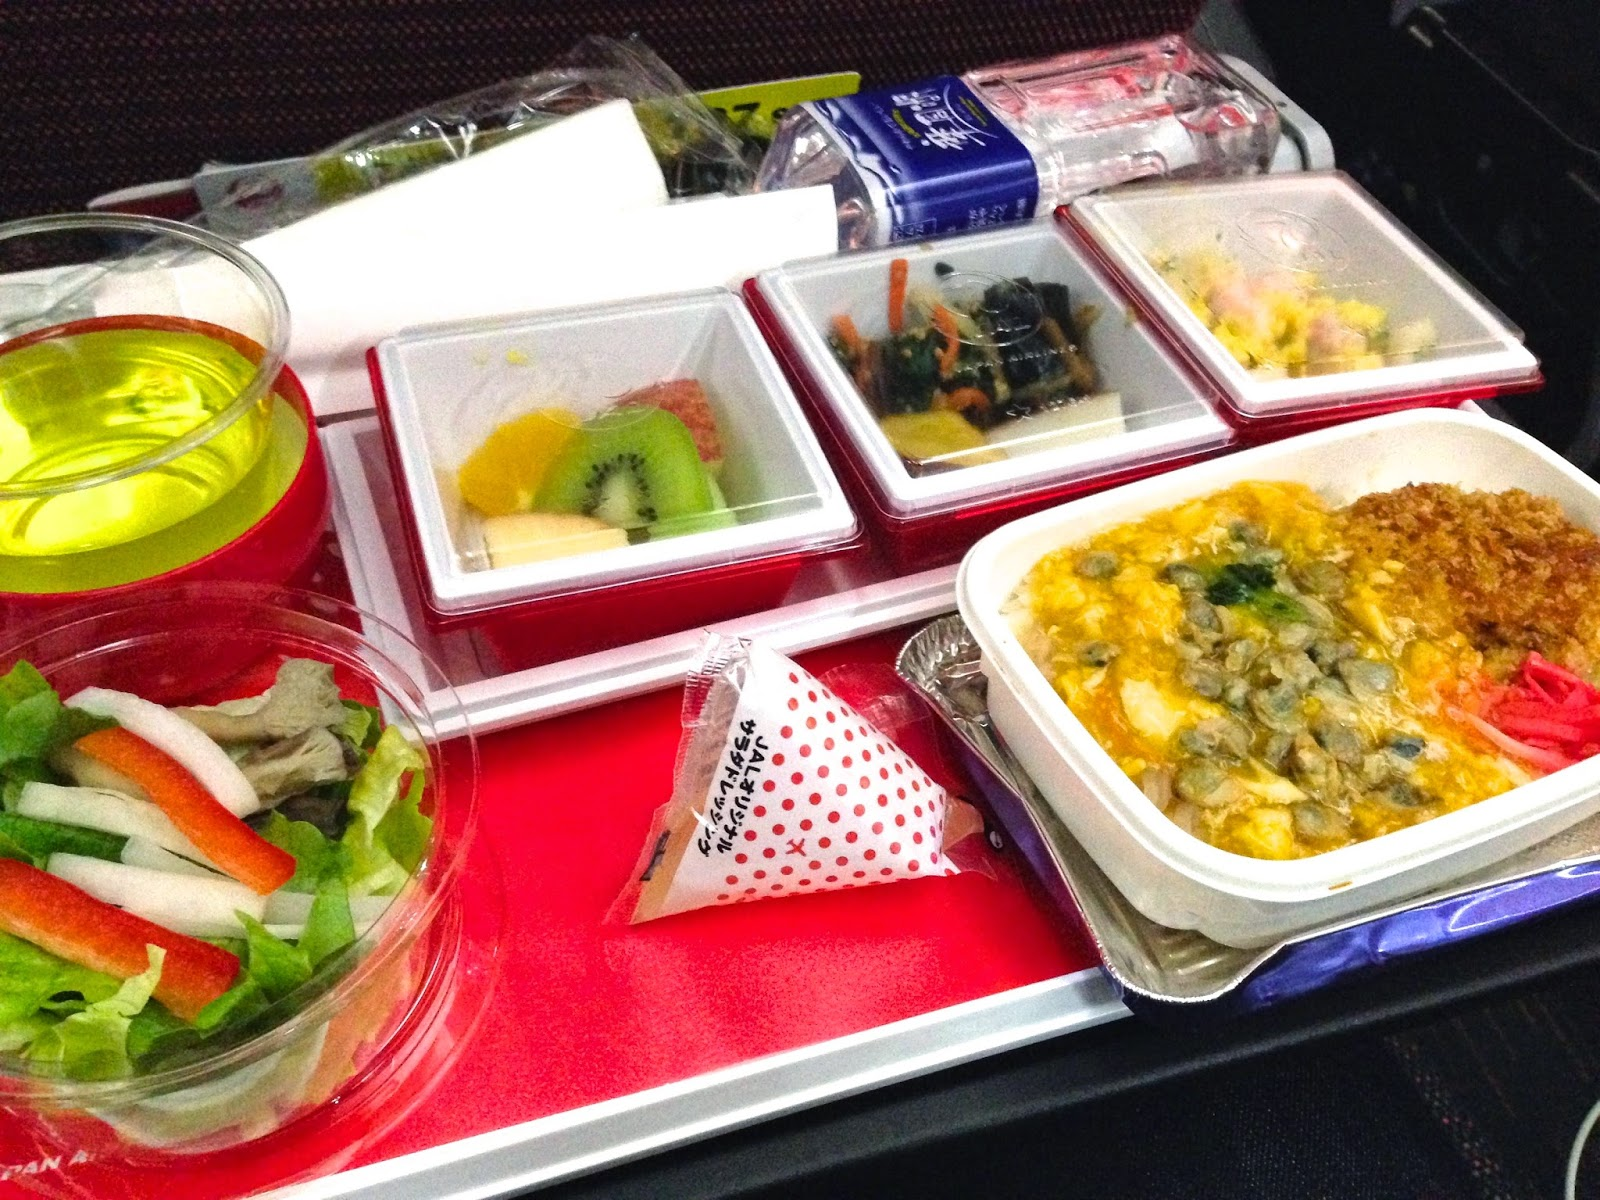 jal-jl751-flight-meal